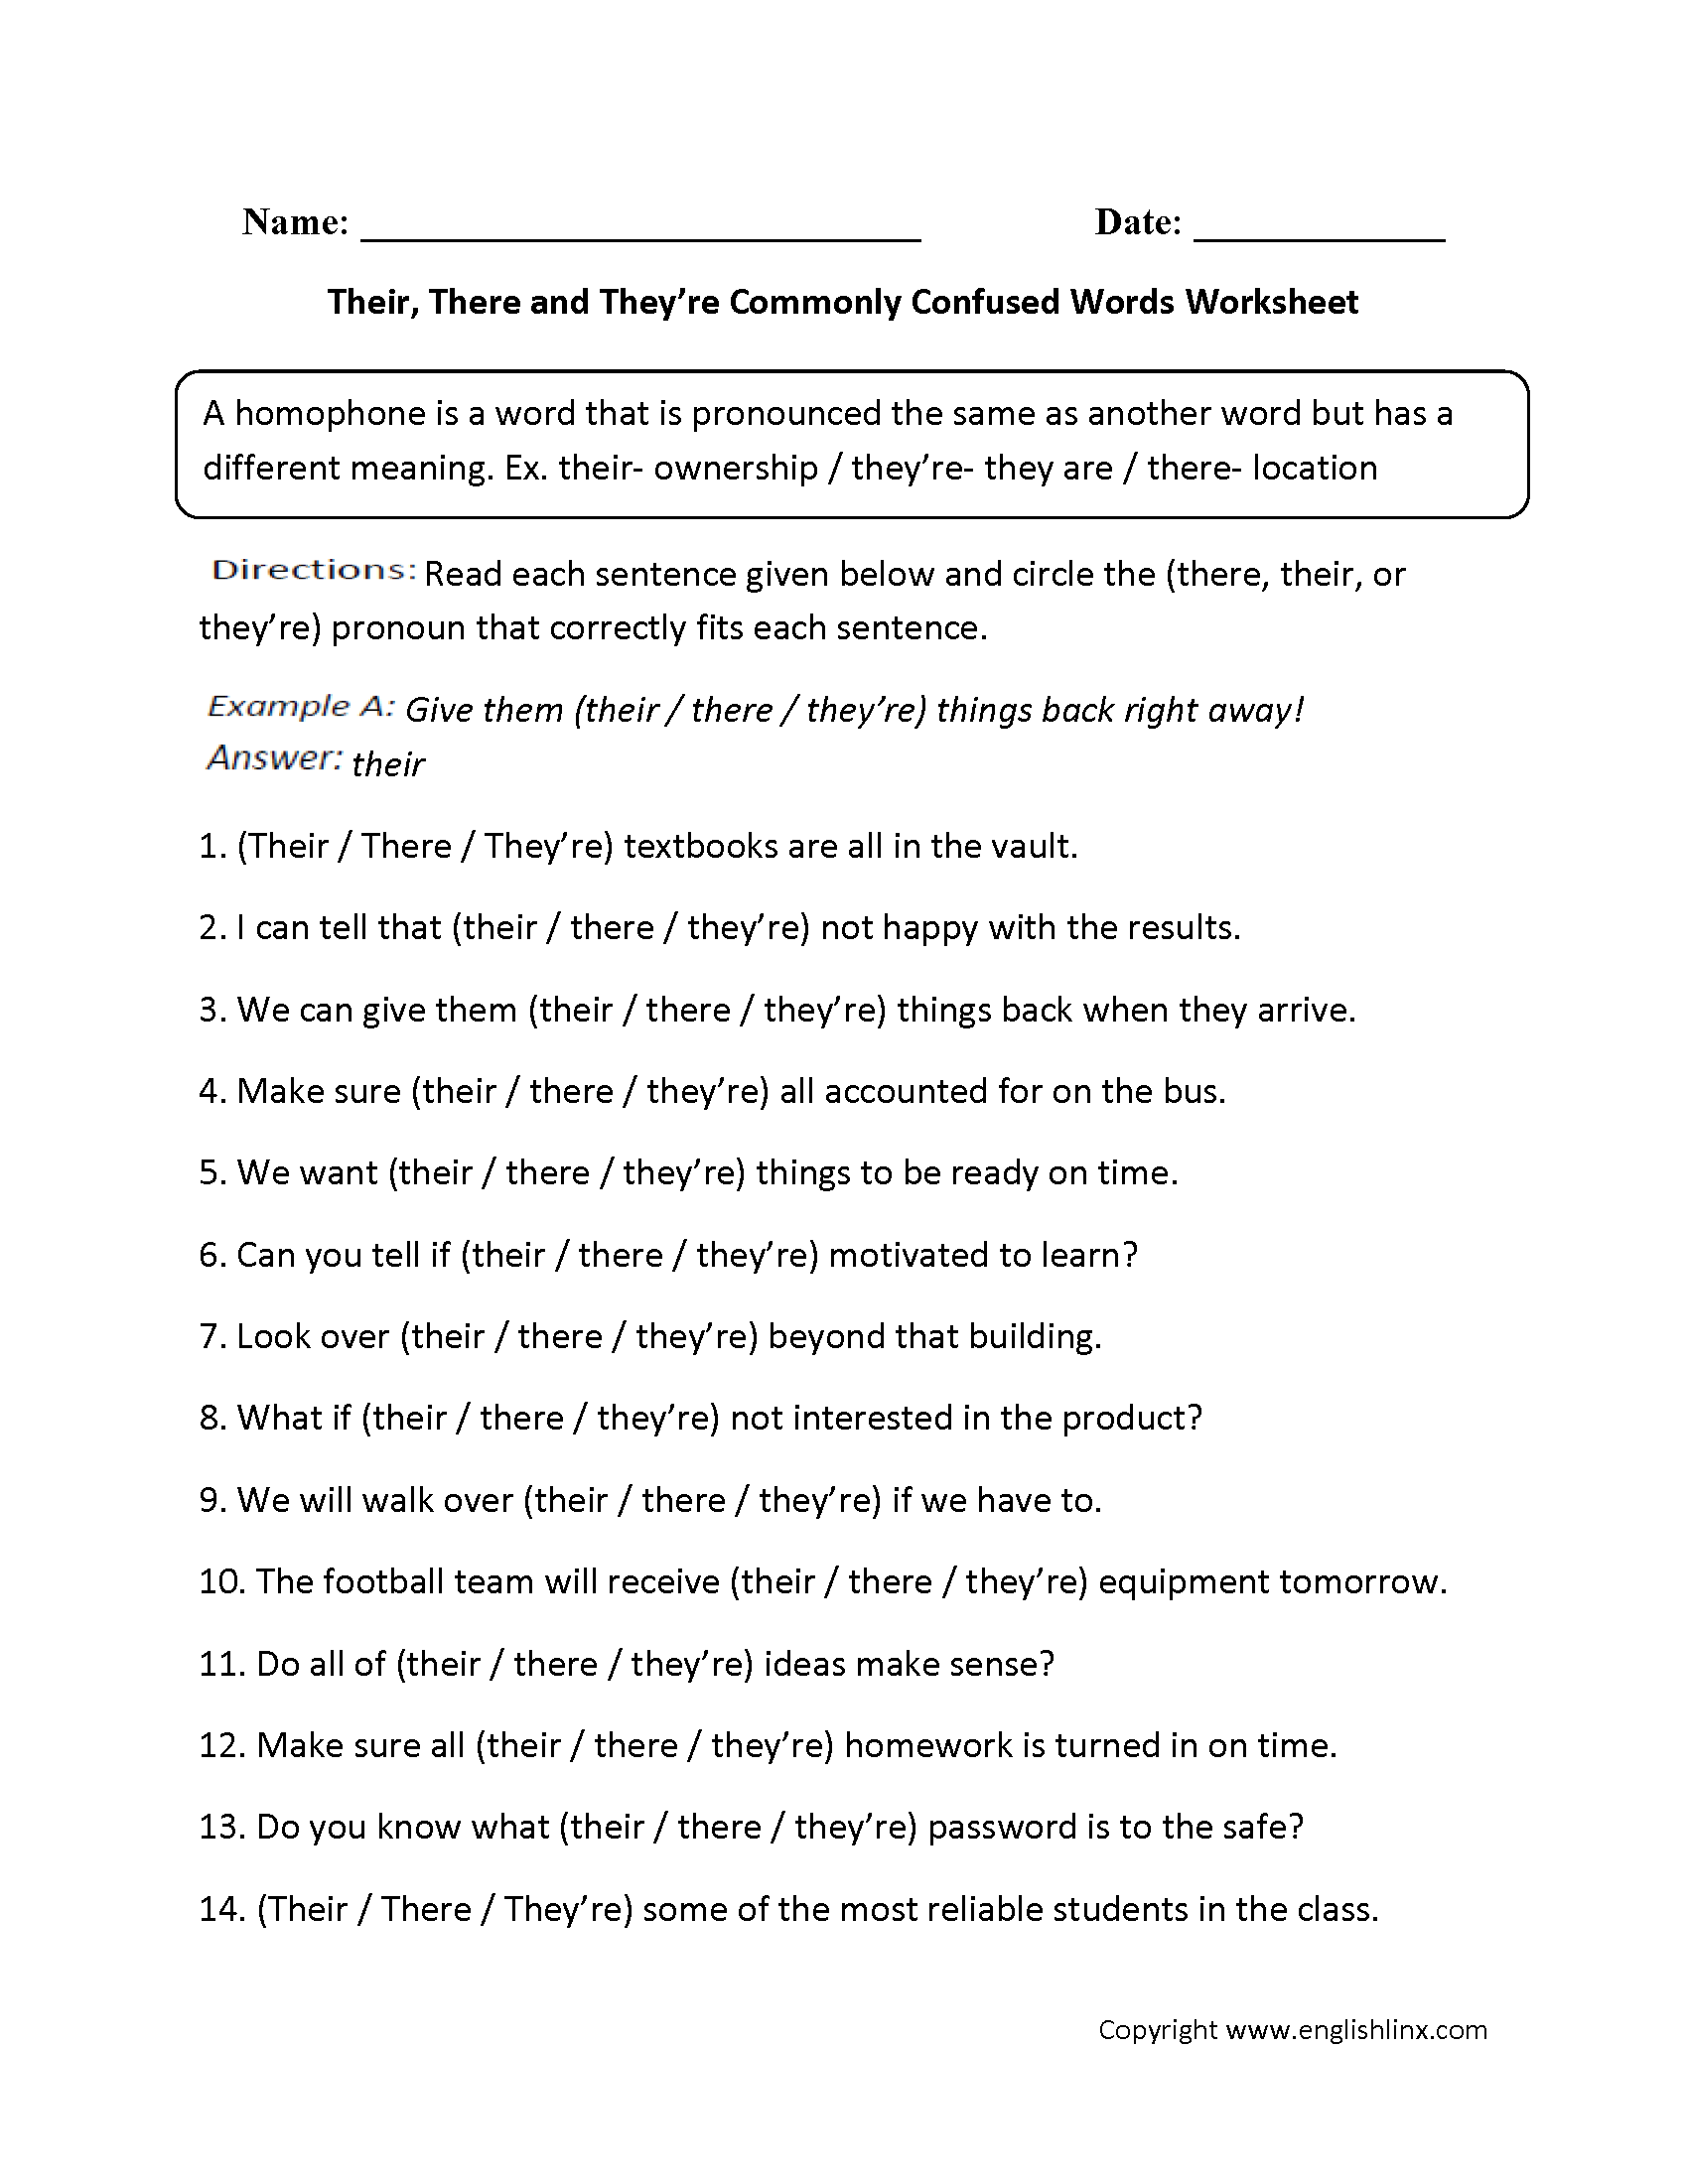 Their There They Re Commonly Confused Words Worksheets Homophones Worksheets Commonly Confused Words Word Usage [ 2200 x 1700 Pixel ]